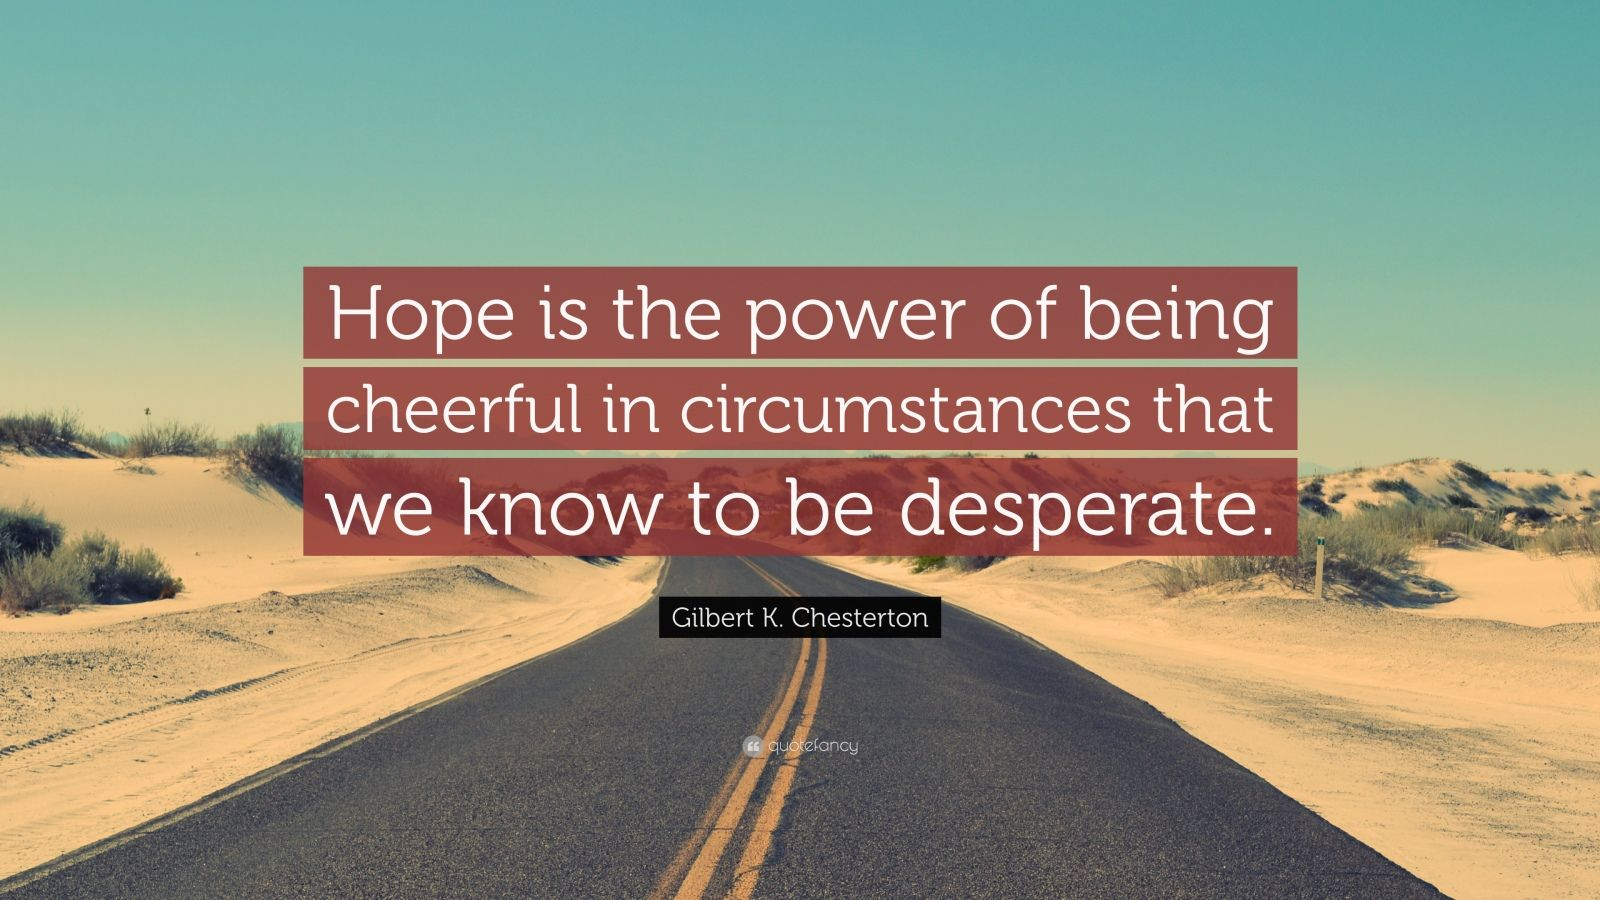 """Gilbert K. Chesterton Quote: """"Hope is the power of being cheerful in circumstances that we know to be desperate."""""""